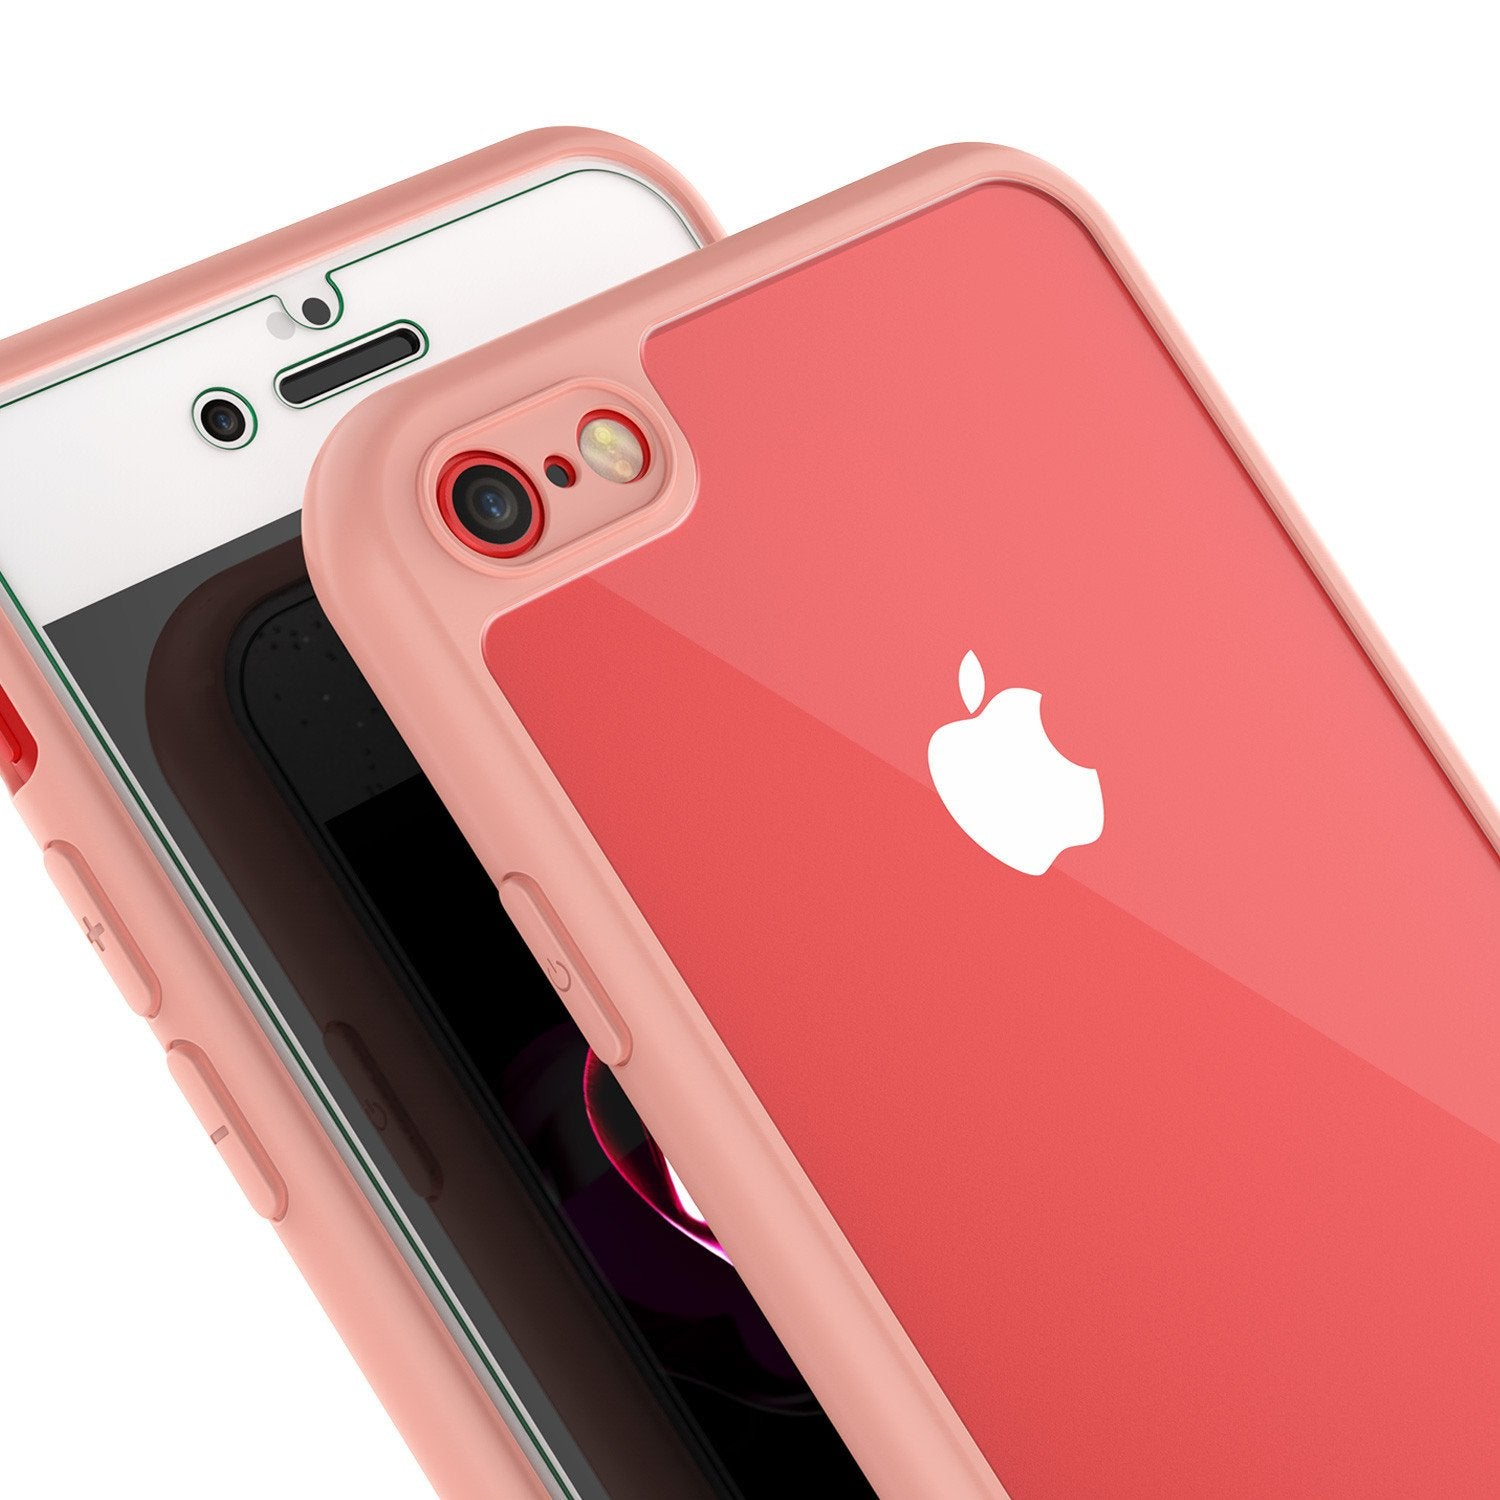 iPhone 7 Case, Punkcase [MASK Series] [PINK] Full Body Hybrid Dual Layer TPU Cover [Clear Back] [Non Slip] [Ultra Thin Fit] W/ protective Tempered Glass Screen Protector for Apple iPhone 7S